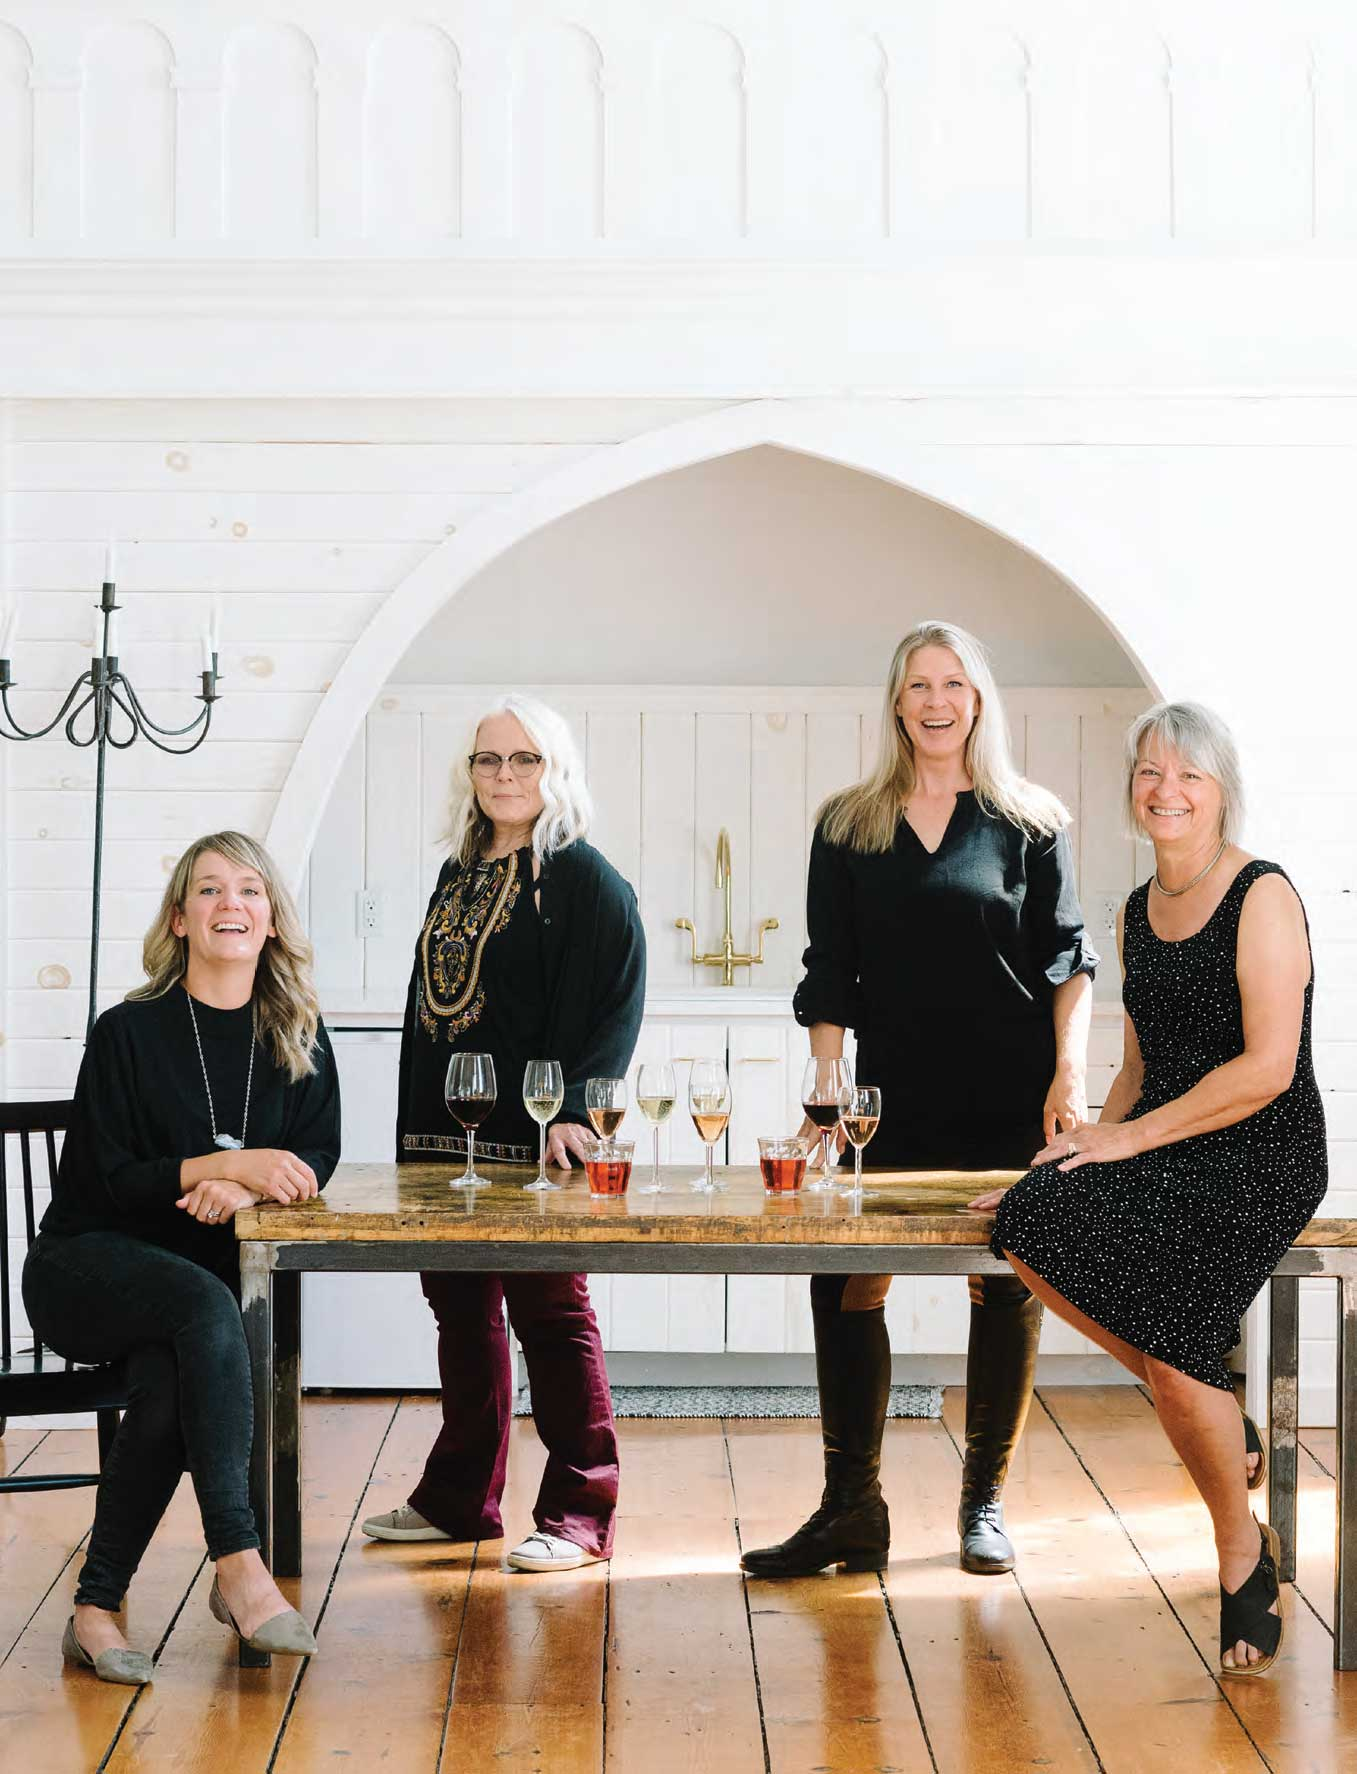 Astrid Young, Marlise Ponzo, Bev Carnahan and Sara Boyd sitting at a table drinking wine